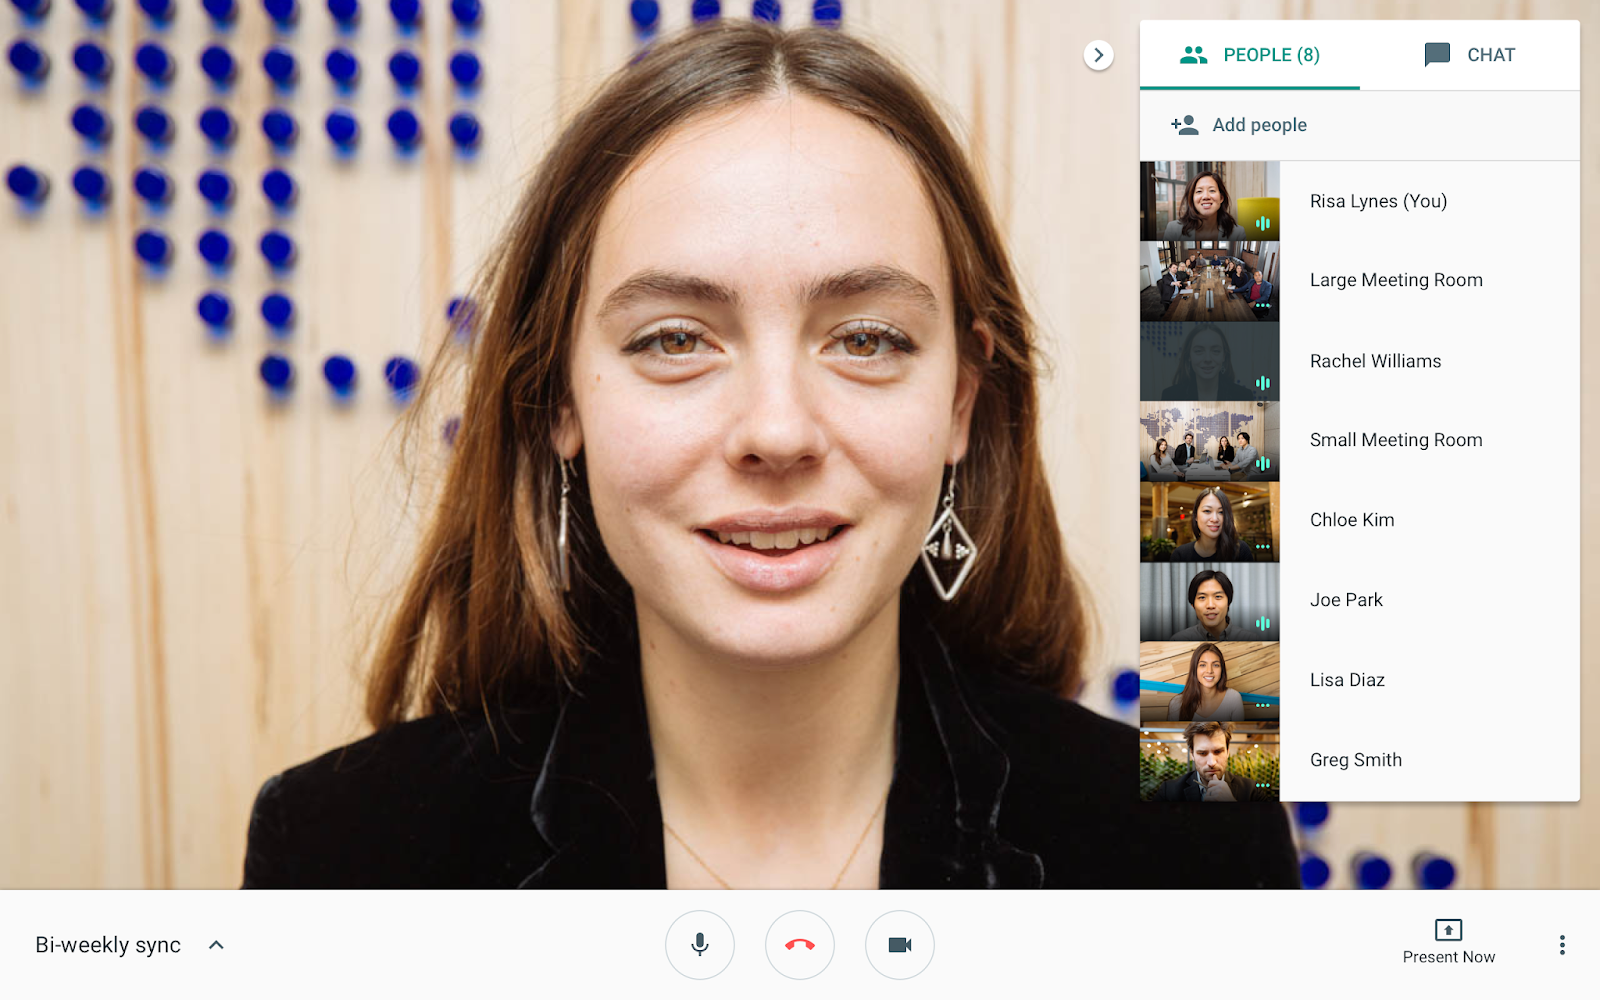 G Suite Updates Blog: Invite people to an ongoing Hangouts Meet meeting